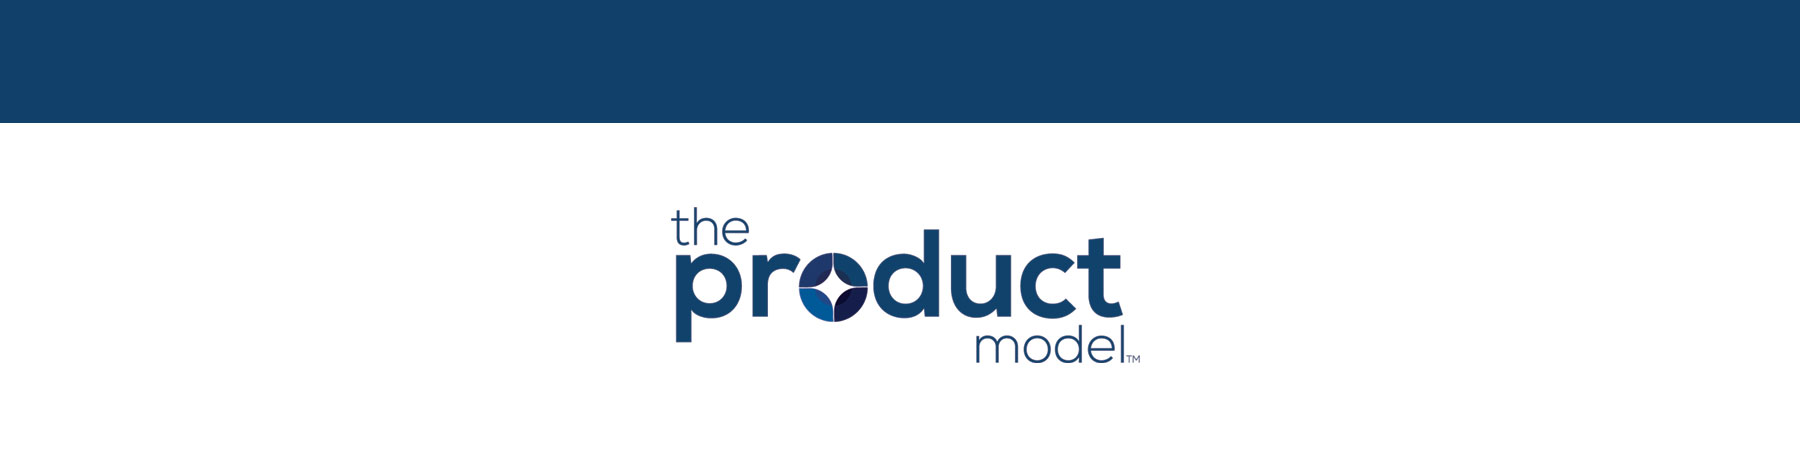 The Product Model